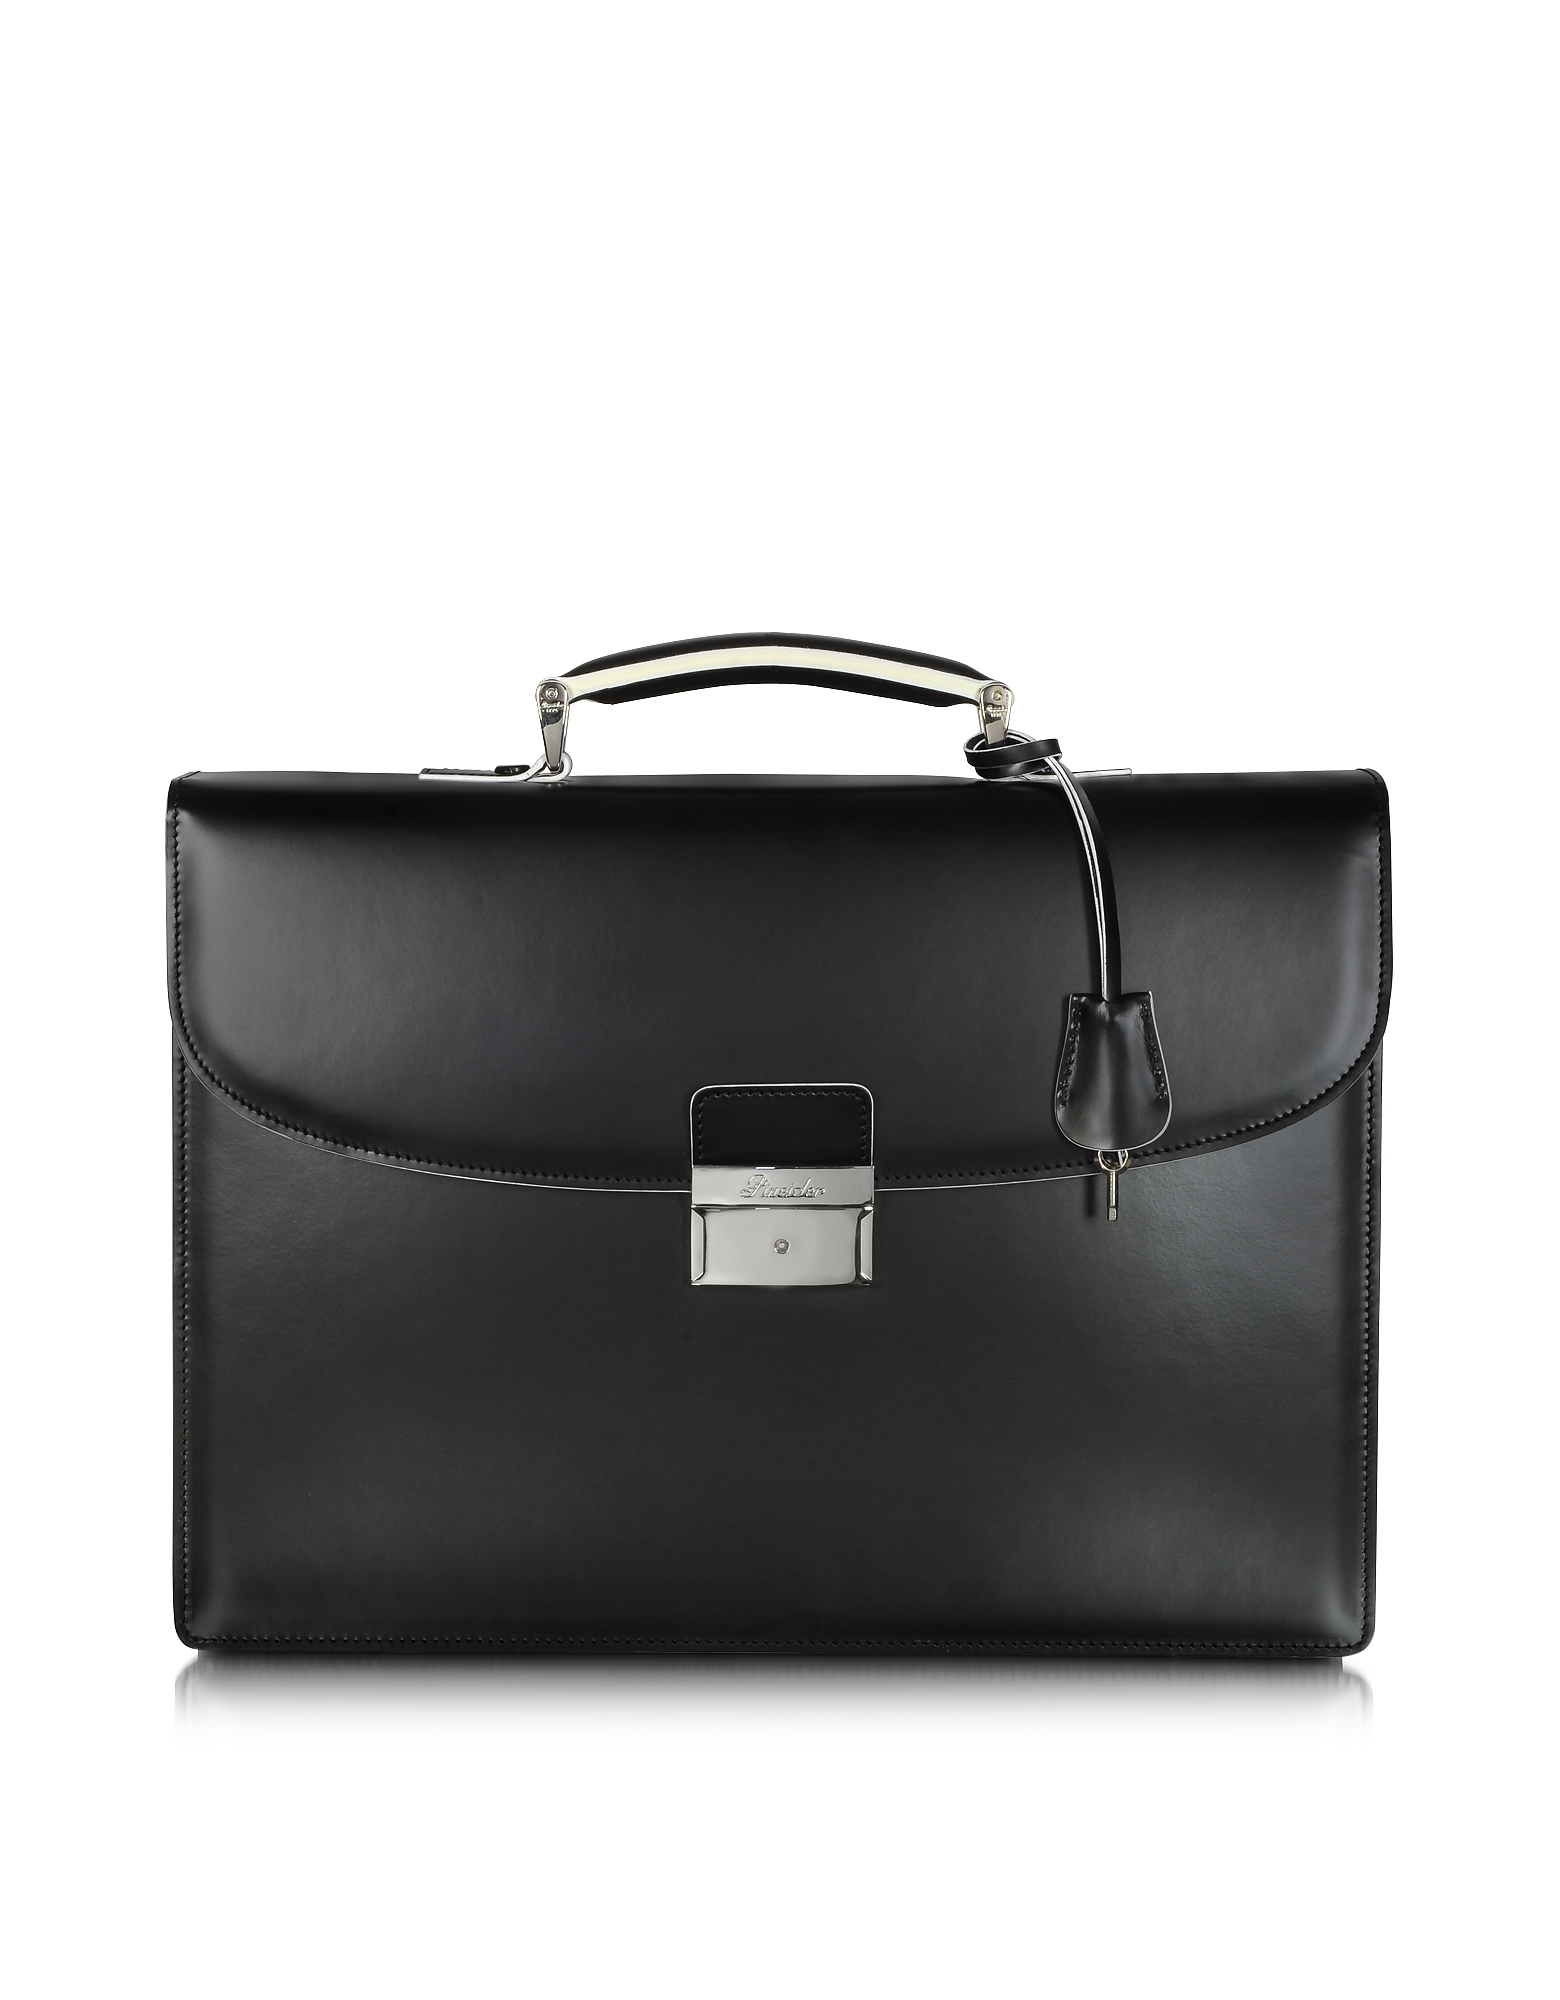 Pineider Briefcases, Optical Black and White Leather Briefcase